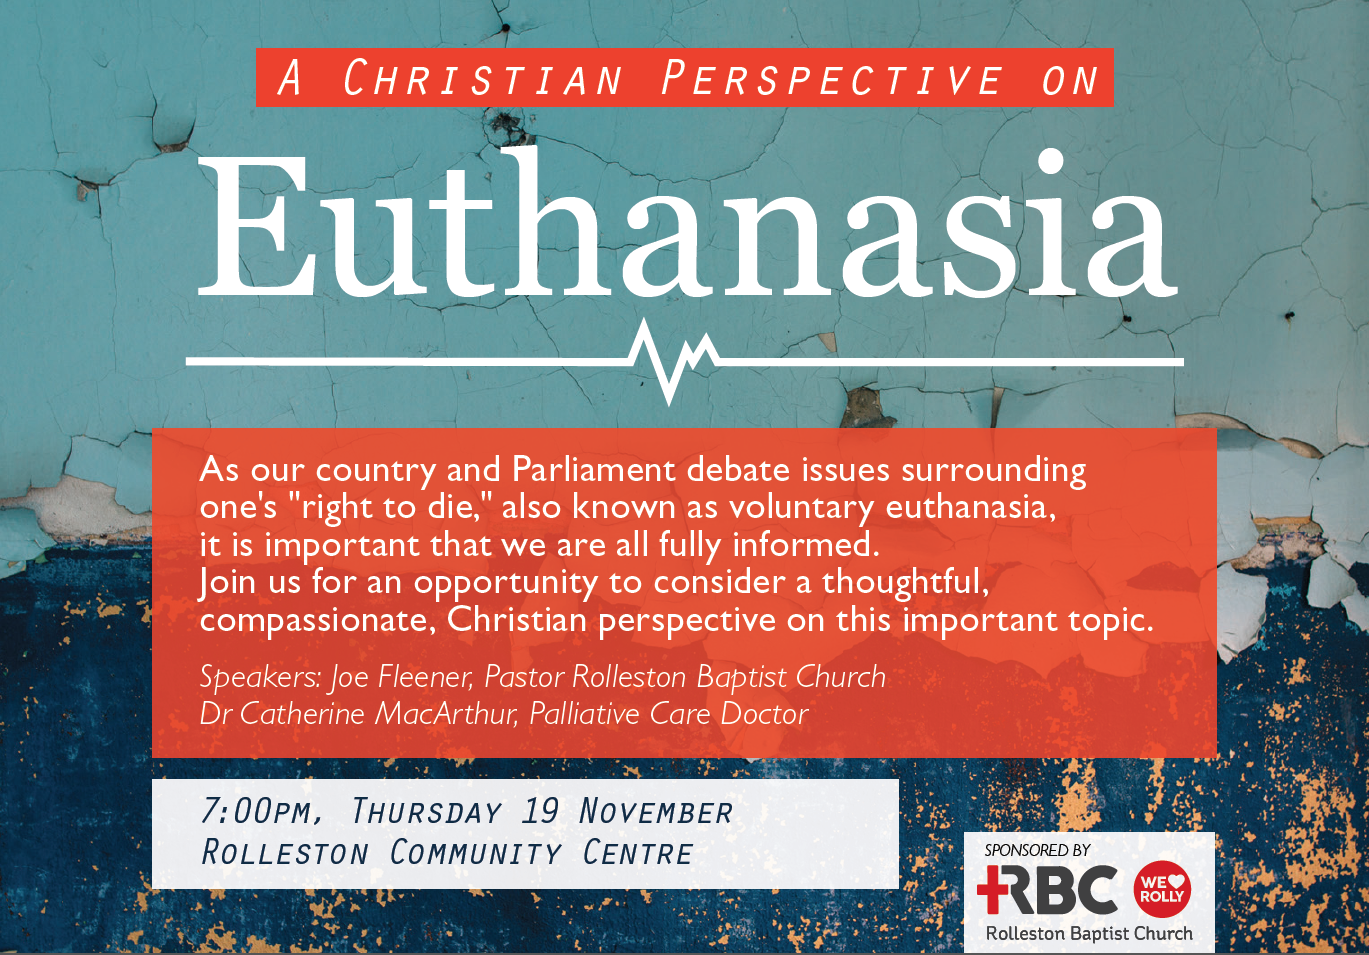 Rolleston Baptist Church - A Christian Perspective on Euthanasia